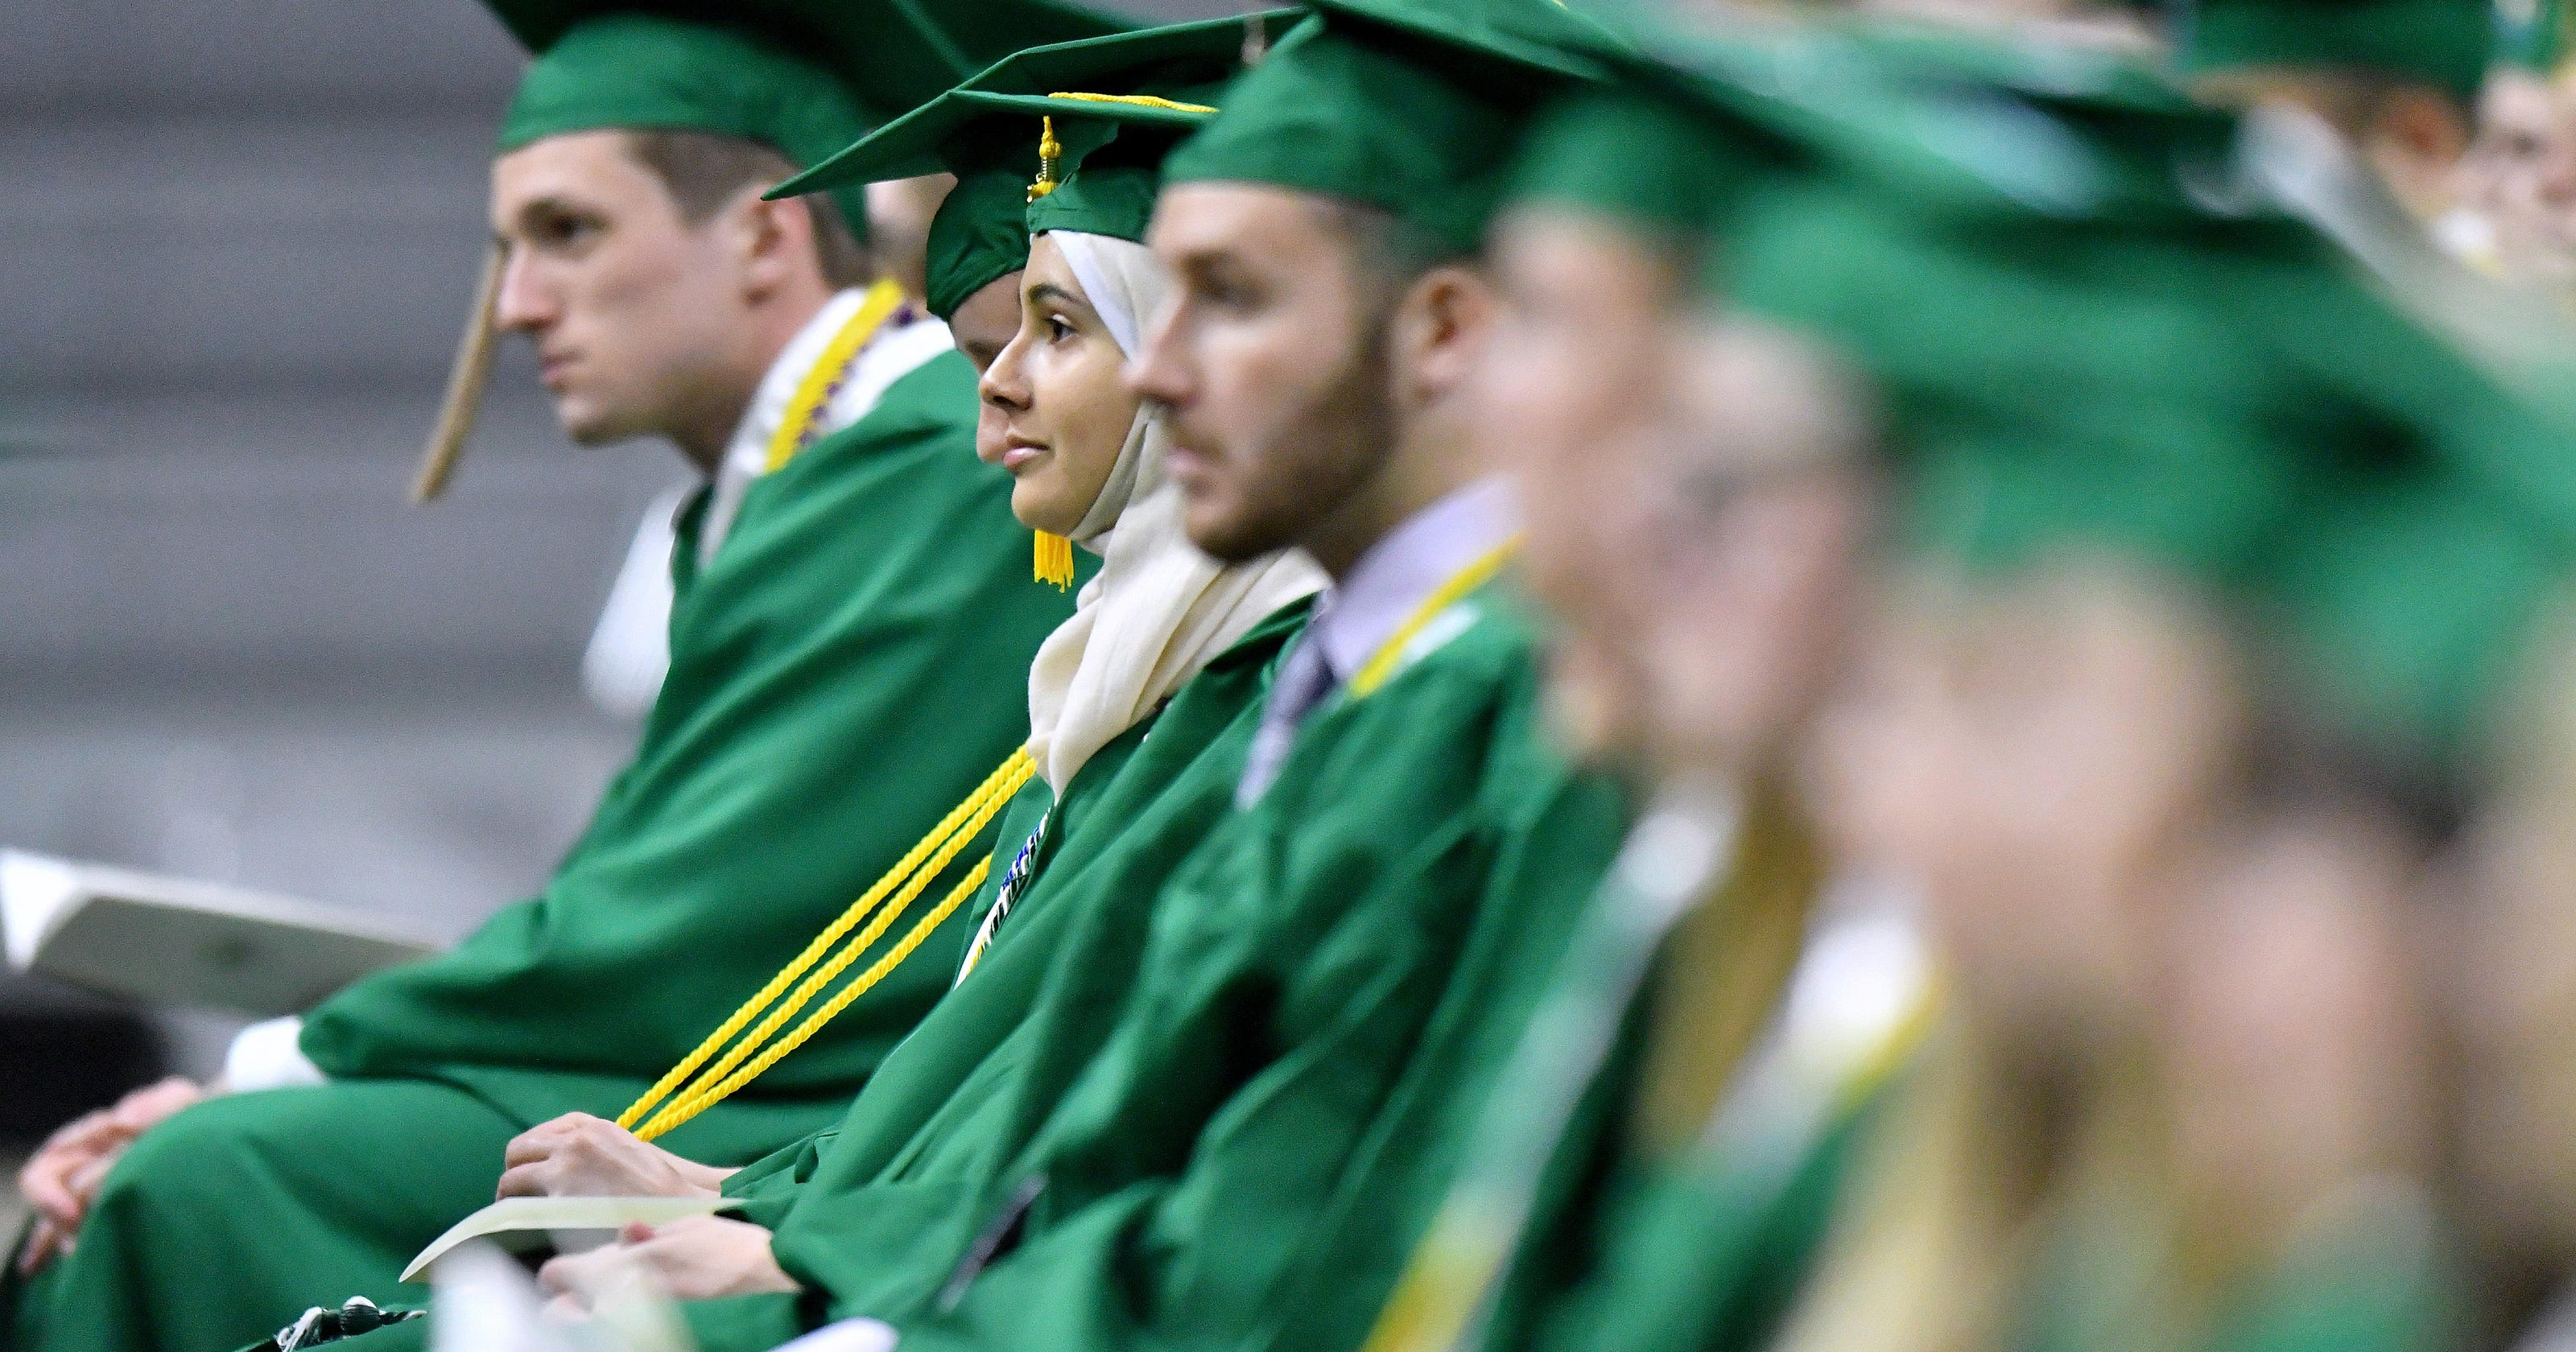 MSU grads honor Nassar victims at commencement